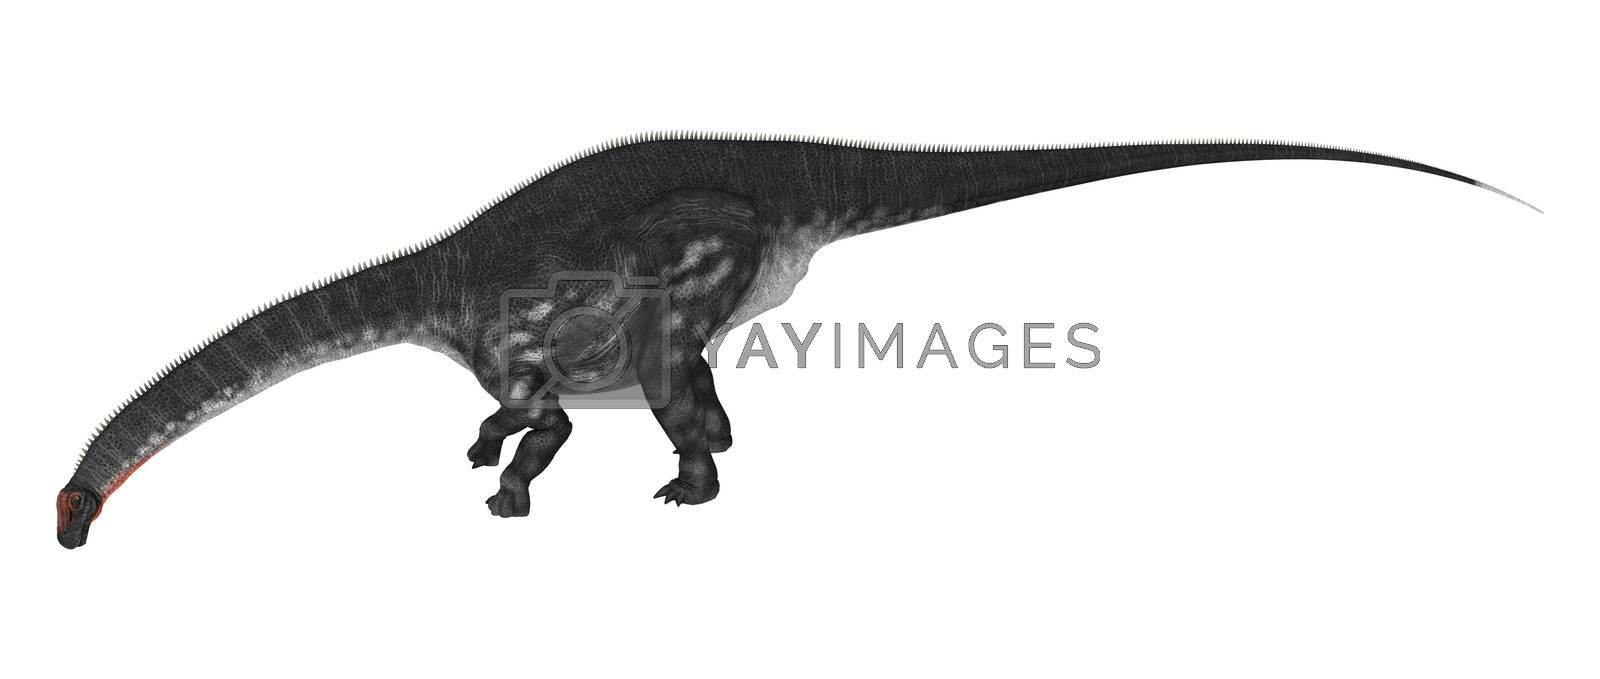 3D digital render of a dinosaur Apatosaurus isolated on white background